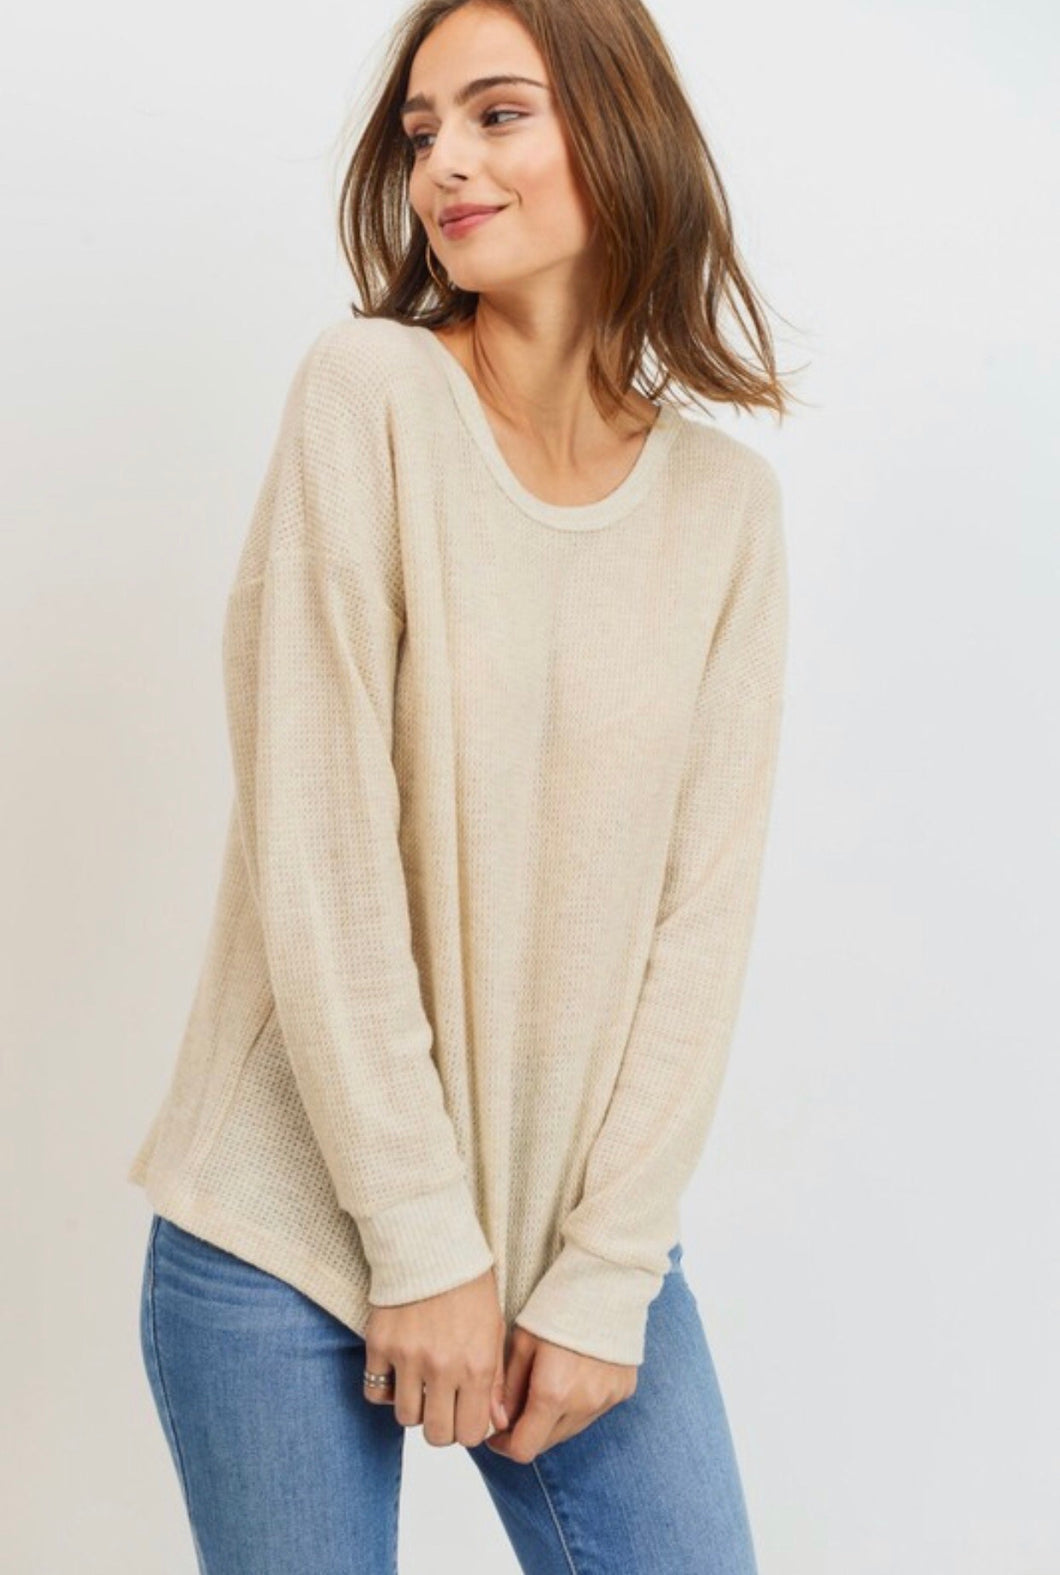 quinn tie back sweater